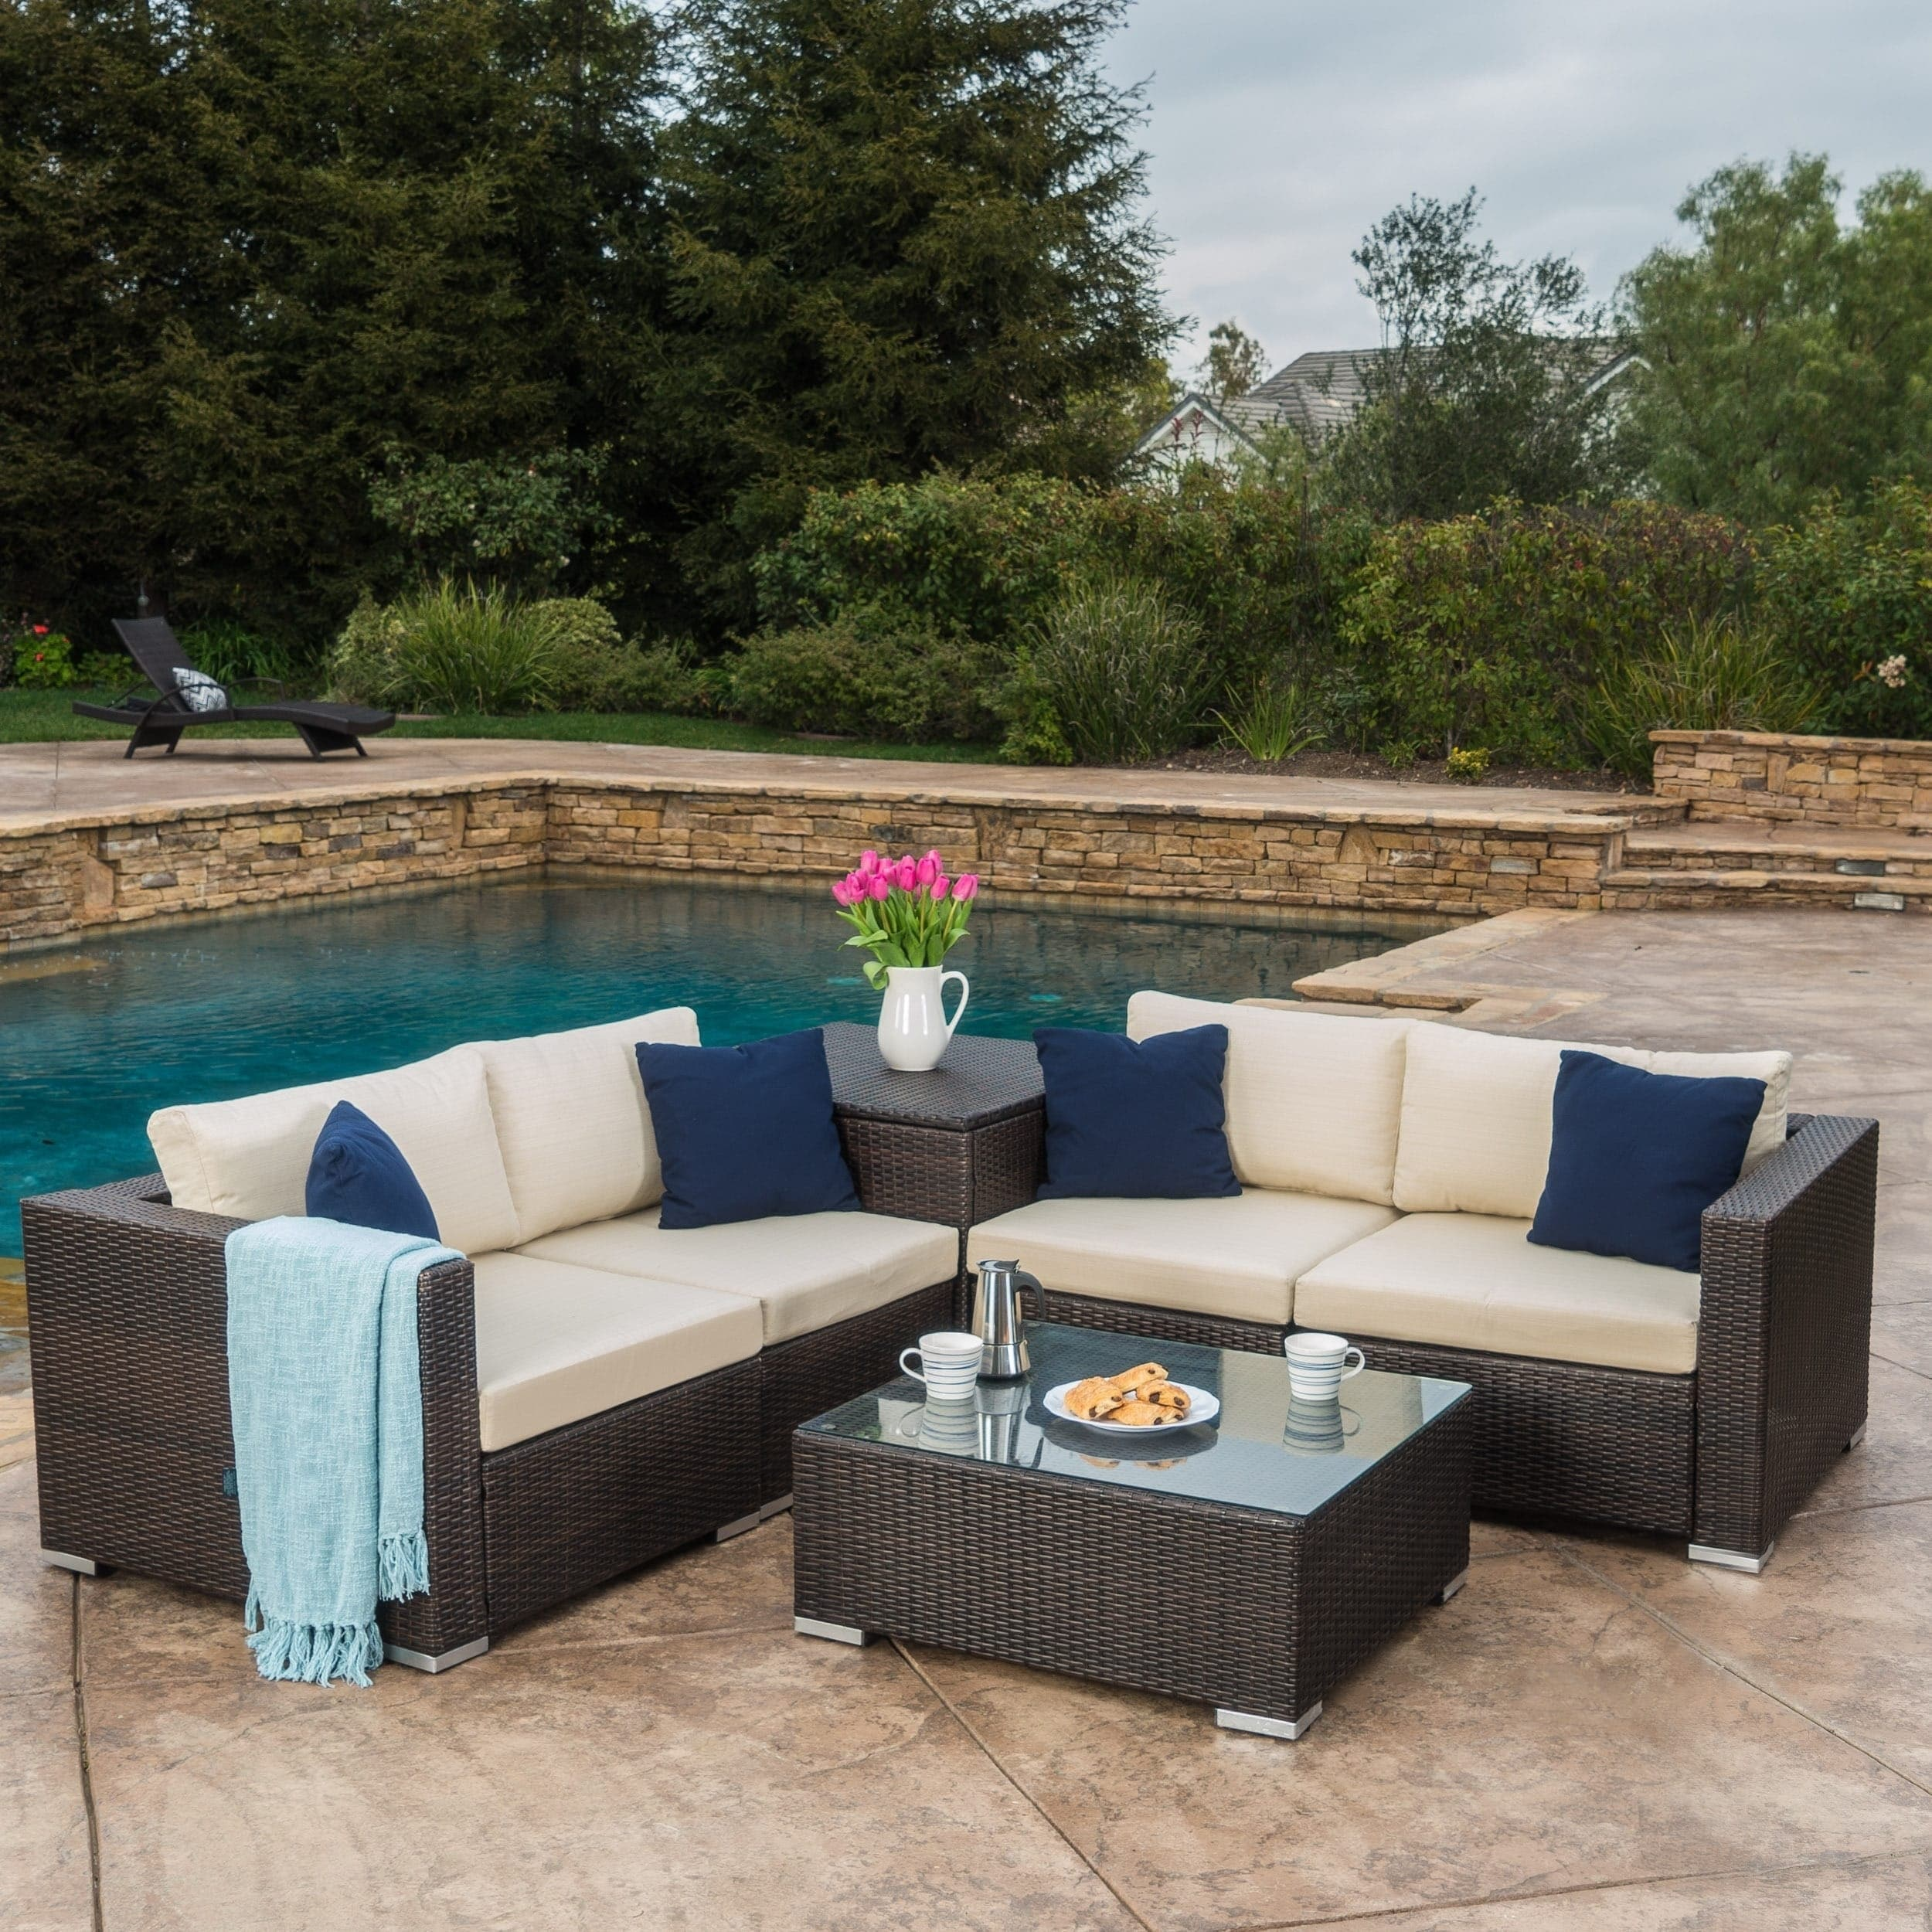 Shop Santa Rosa Outdoor 6 Piece Wicker Sectional Sofa With Storage